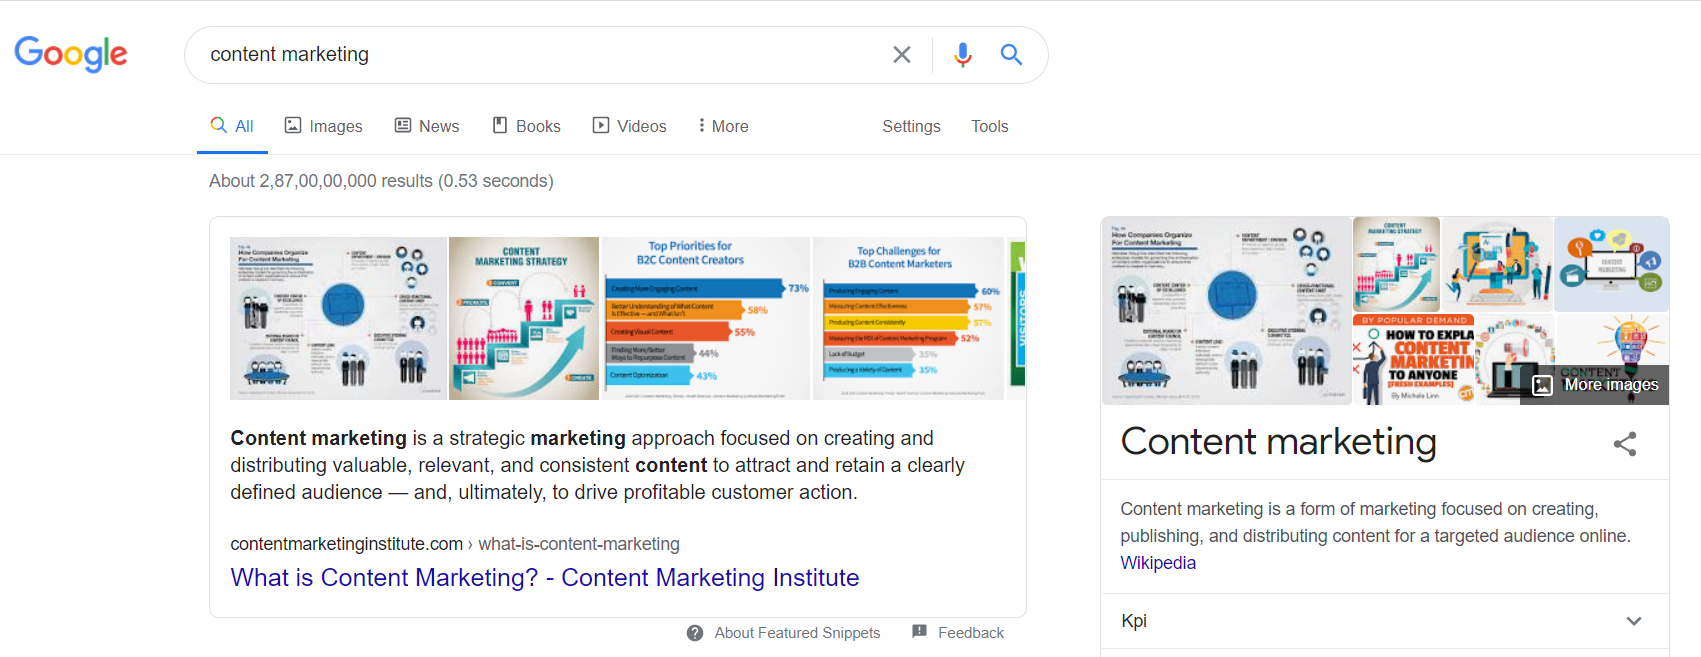 Image shows an example of a featured snippet in Google's search results